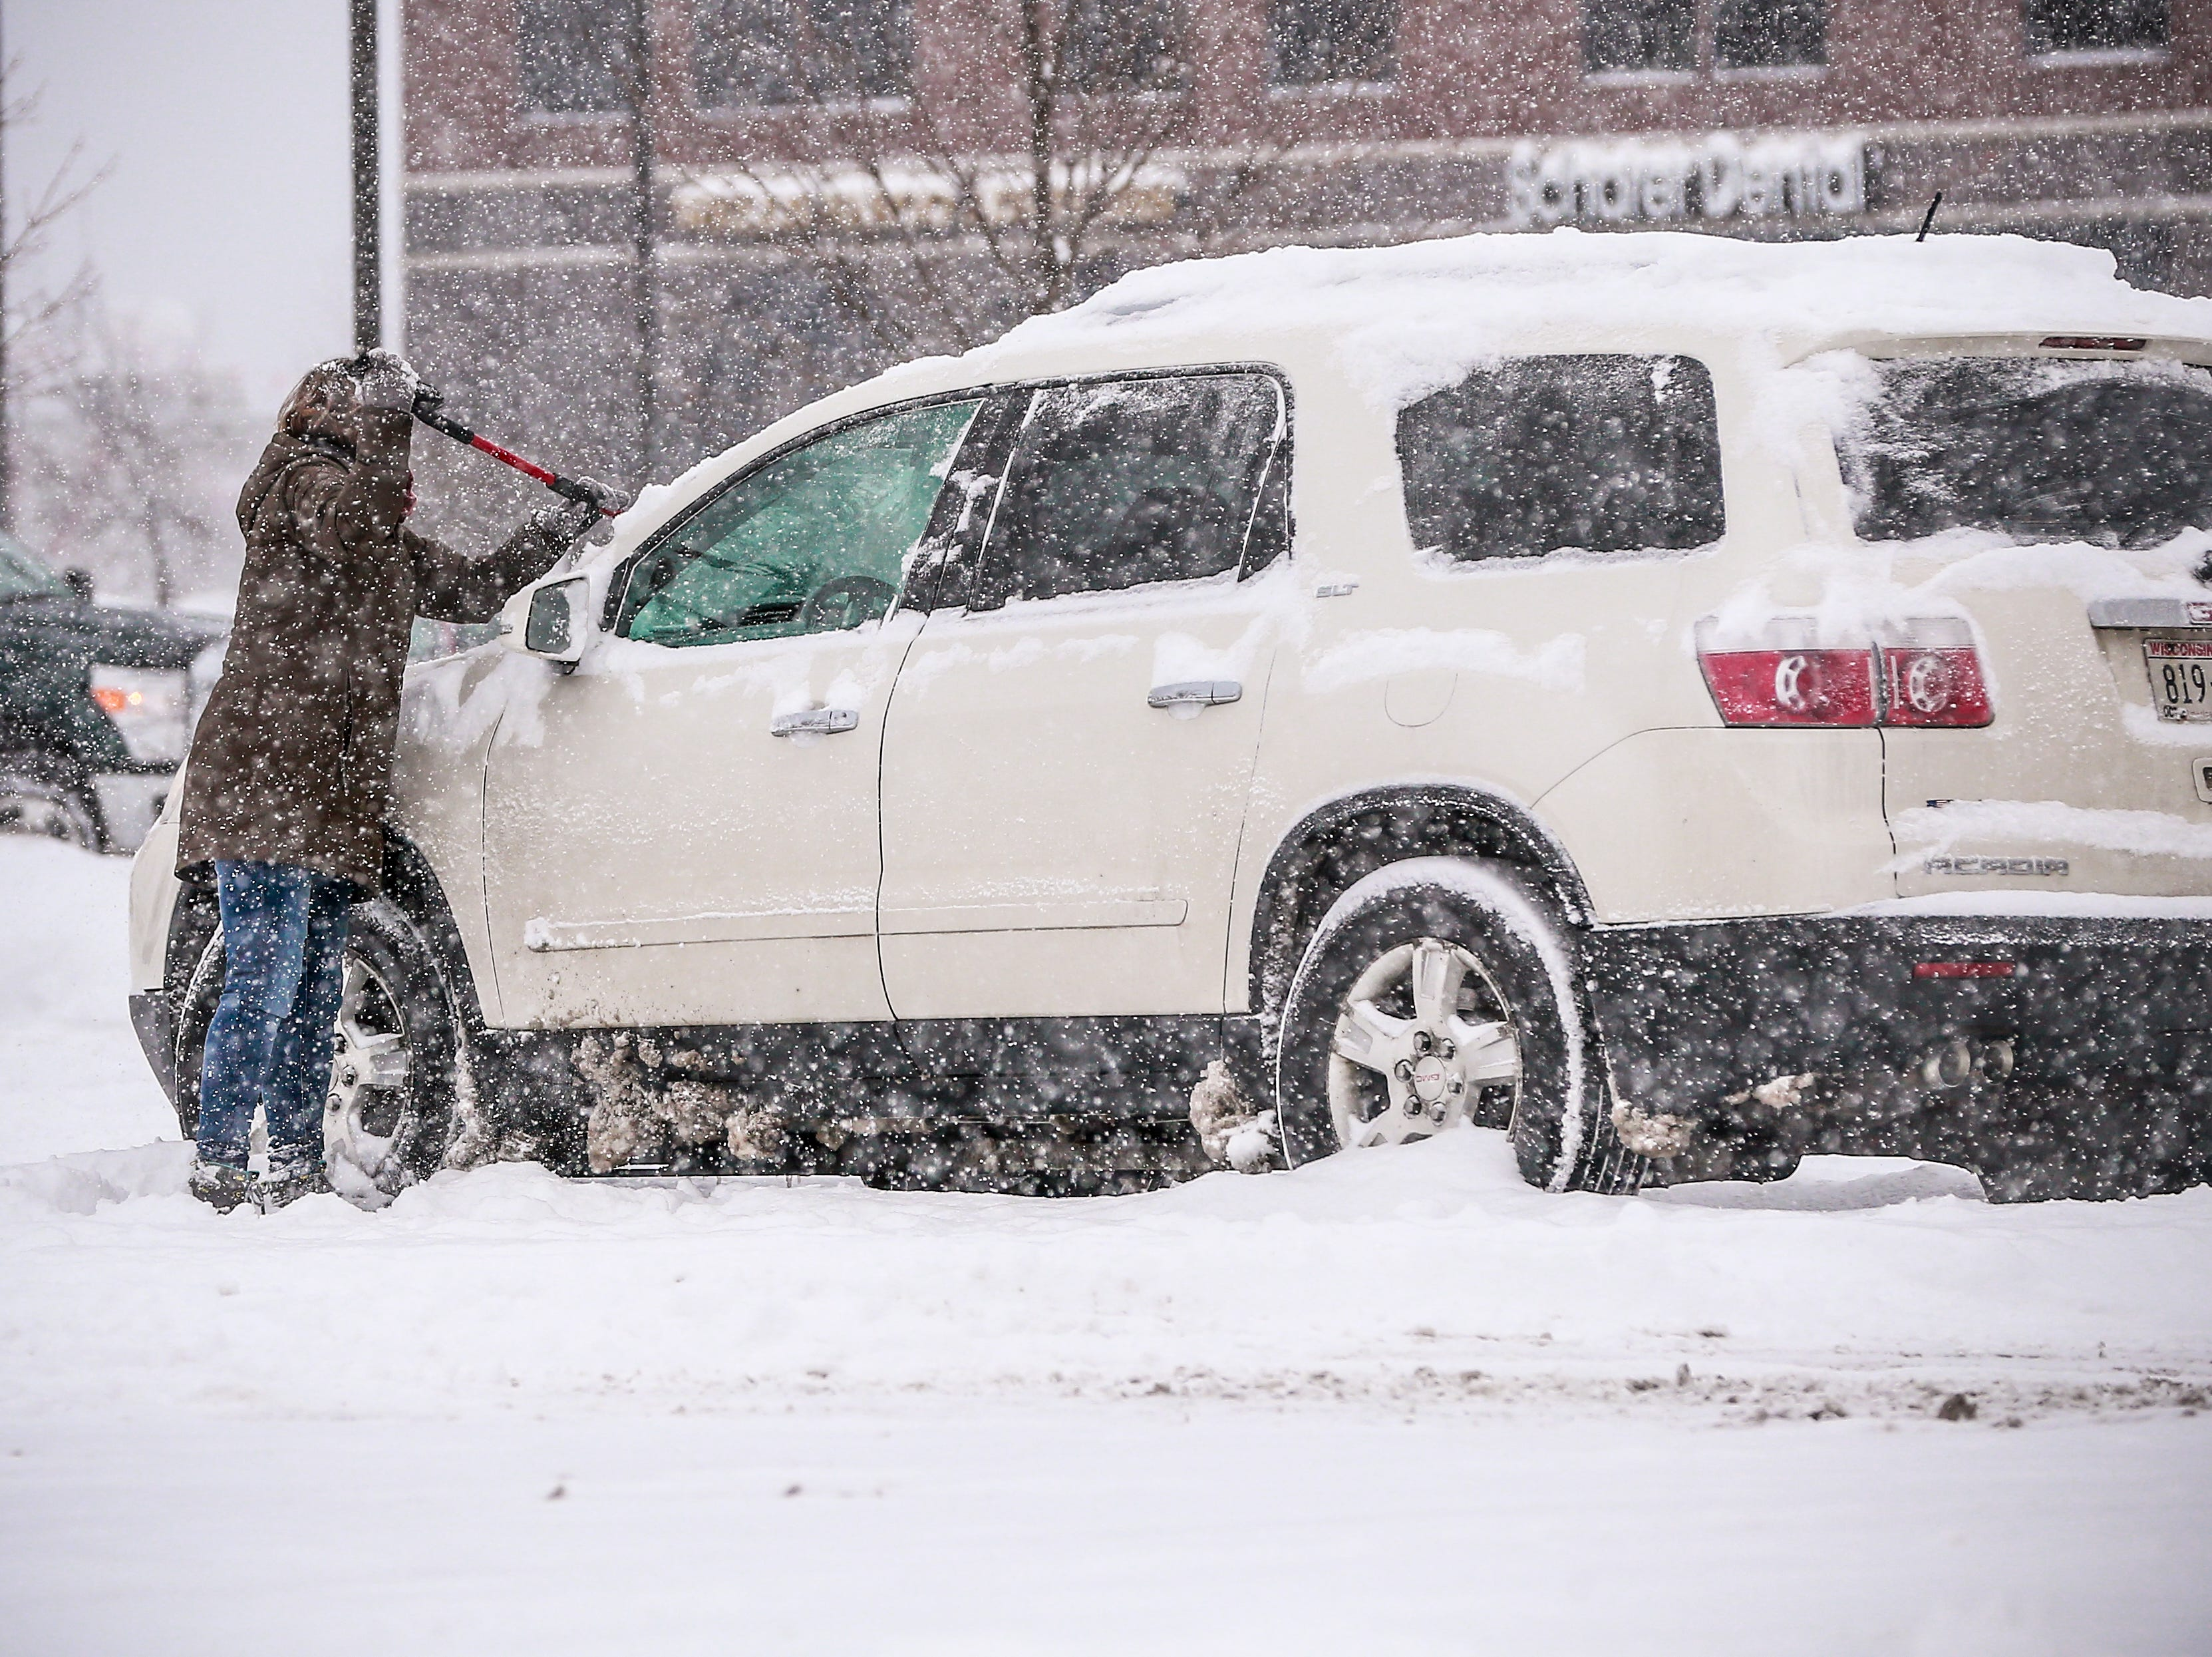 A person brushes snow off from her vehicle during the snowstorm Thursday, Feb. 07, 2019, in Wausau, Wis. T'xer Zhon Kha/USA TODAY NETWORK-Wisconsin